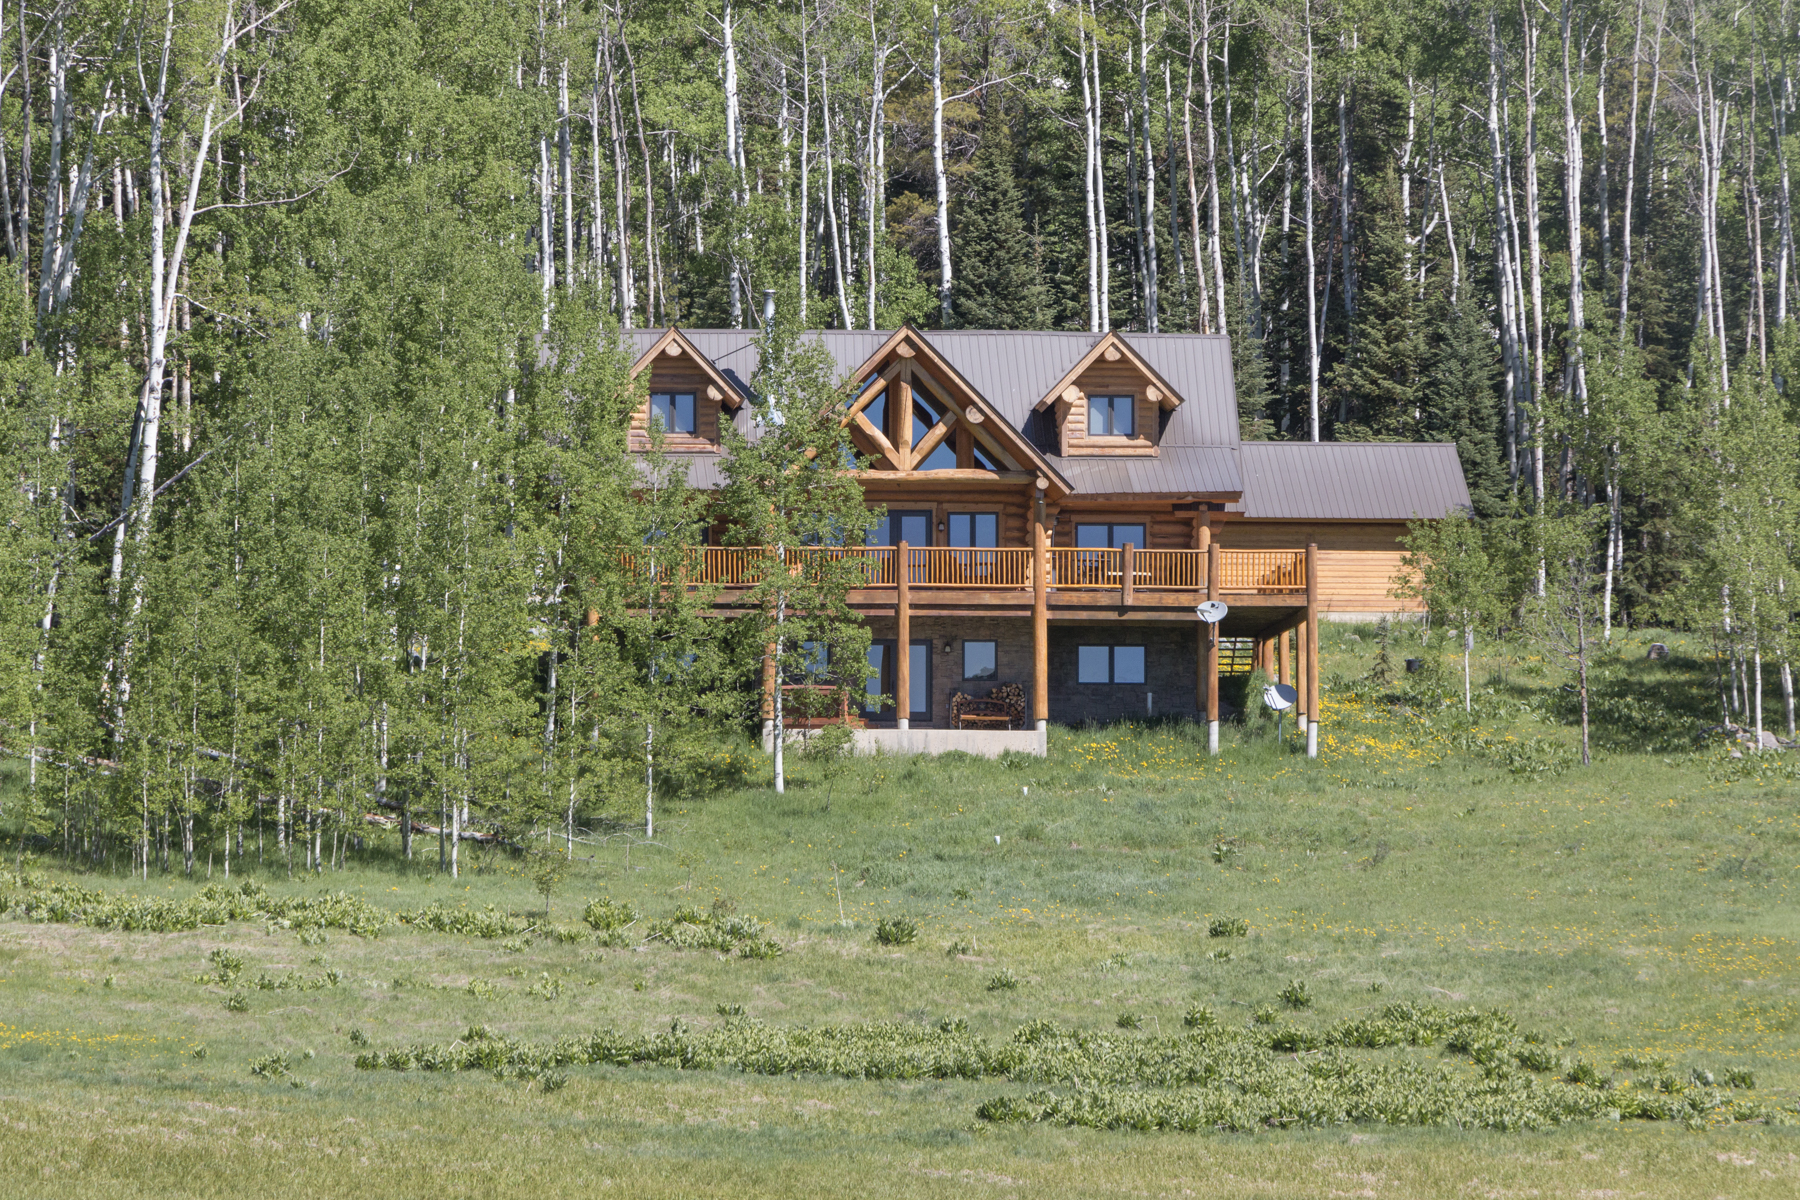 Single Family Home for Active at Wilderness Streams Dream 1815 Sioux Road Gunnison, Colorado 81230 United States